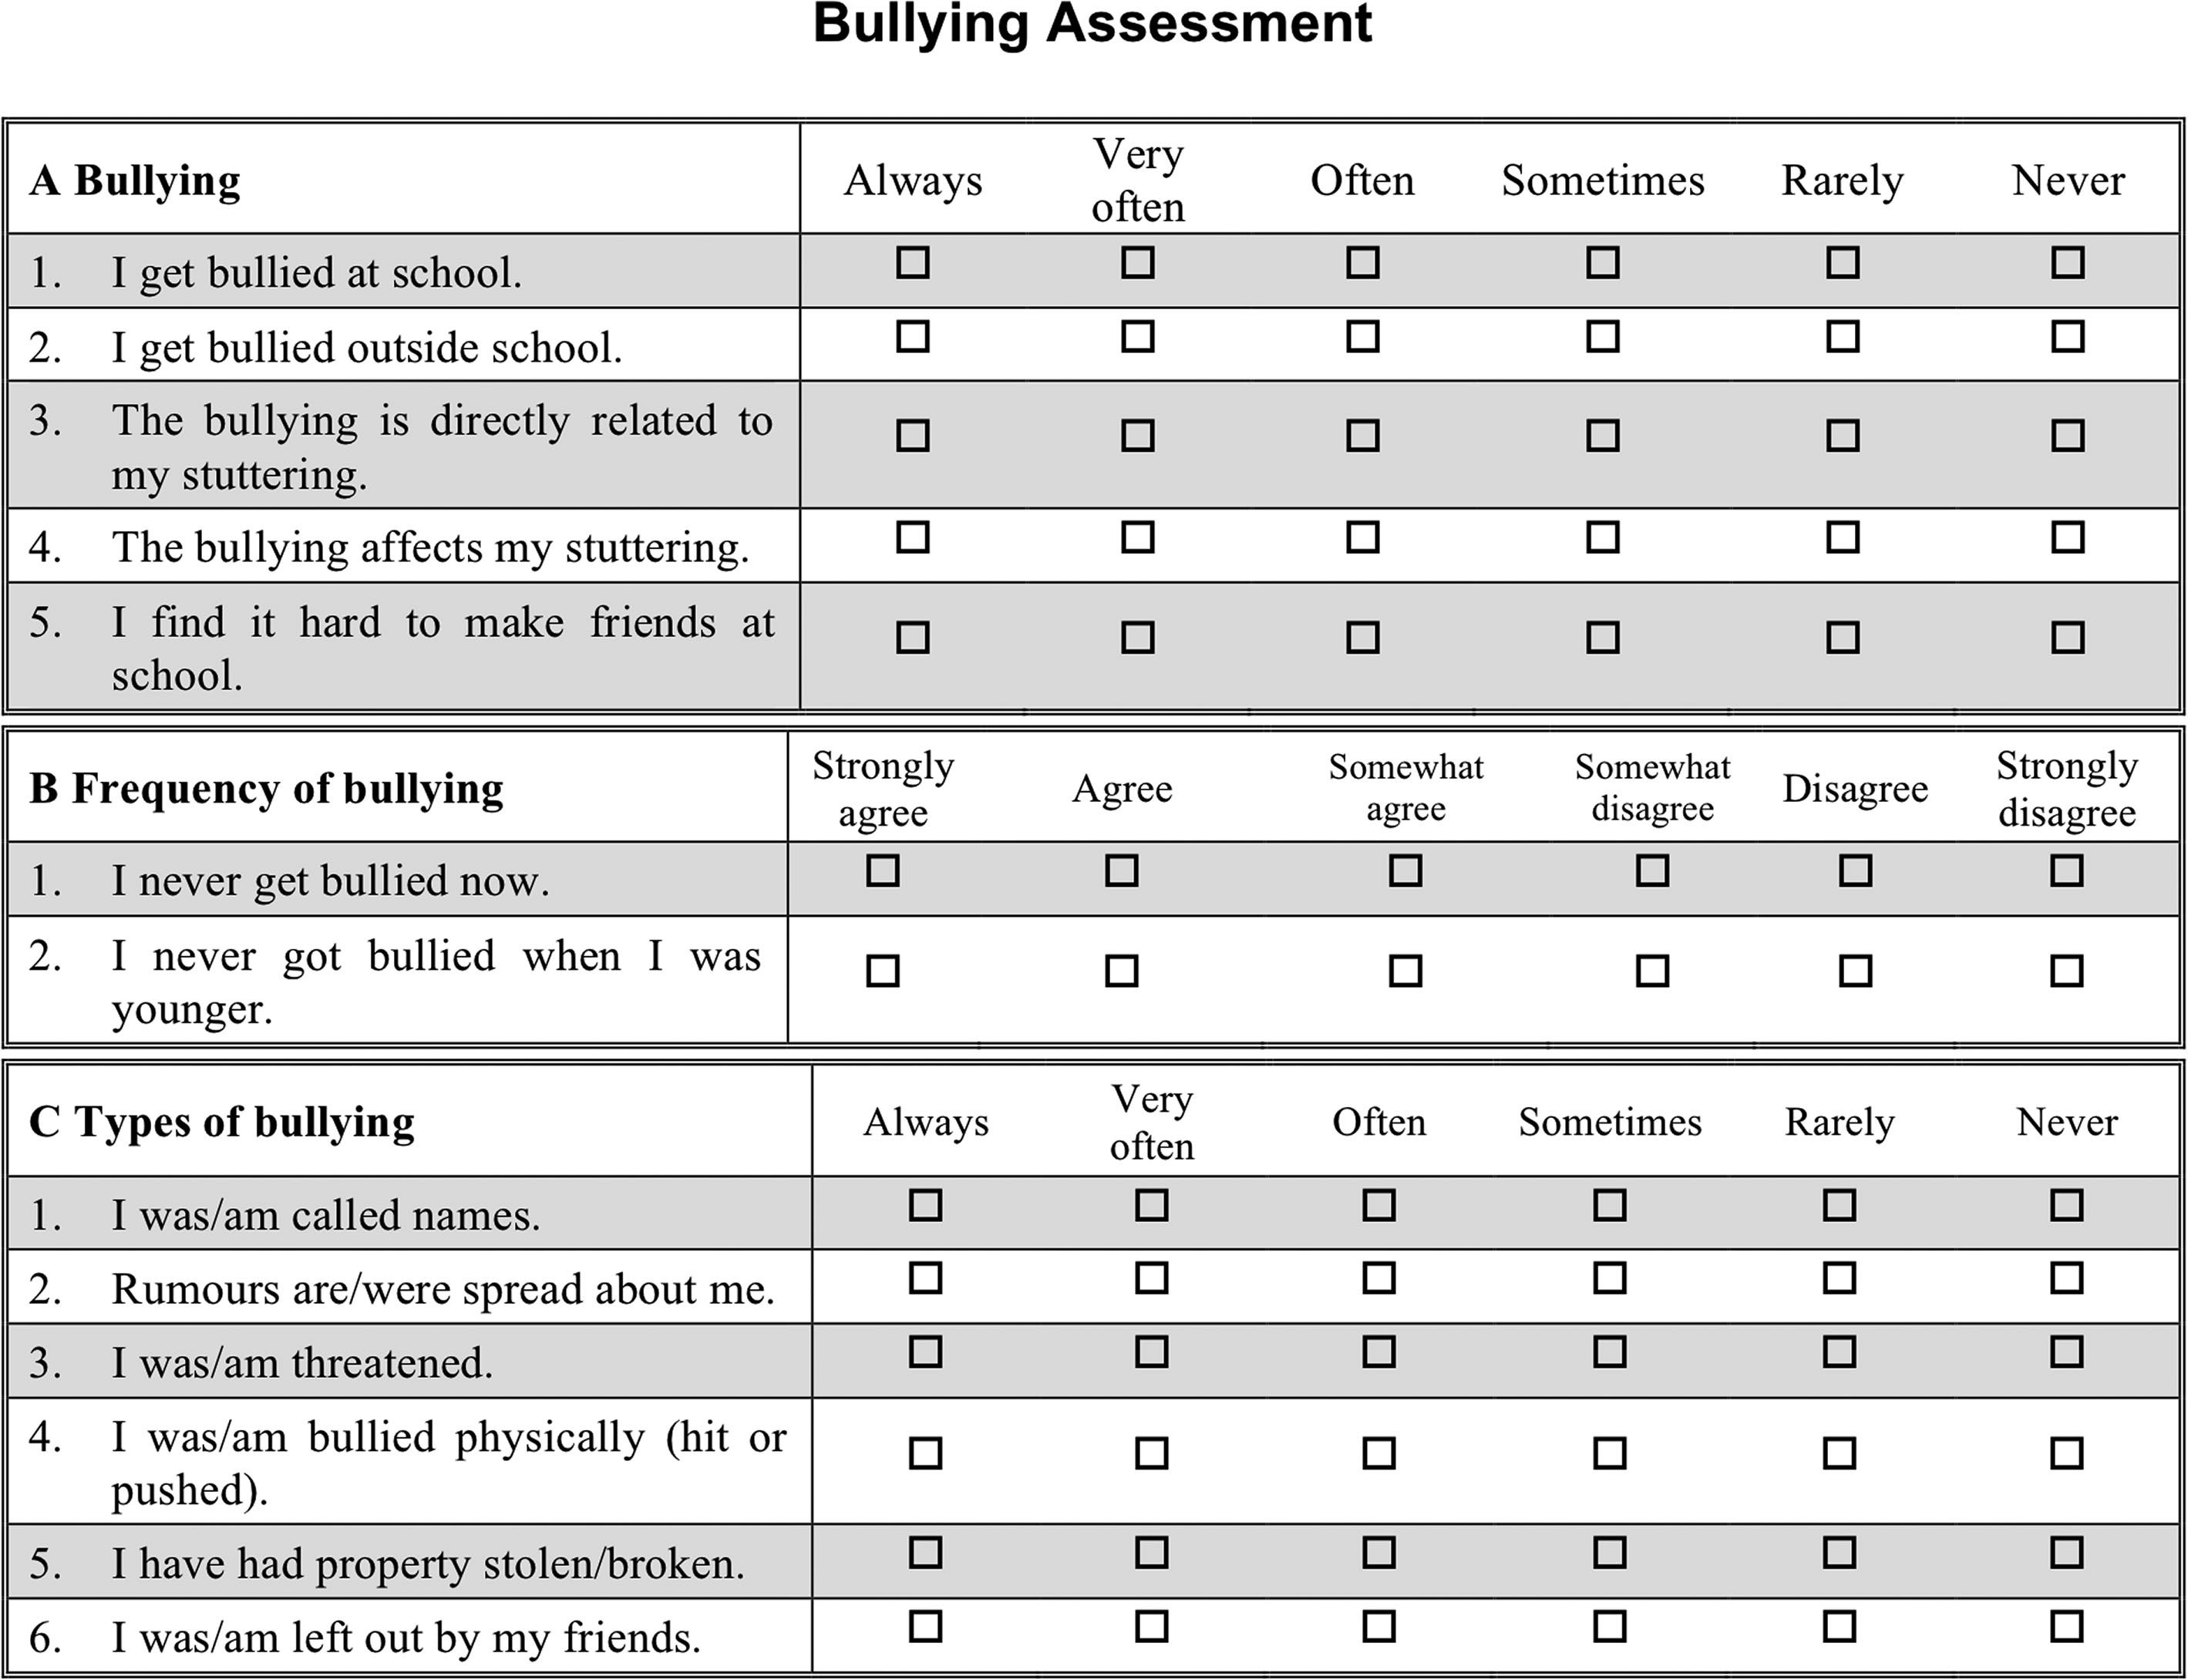 Choosing the Right School Bullying Survey for Your School